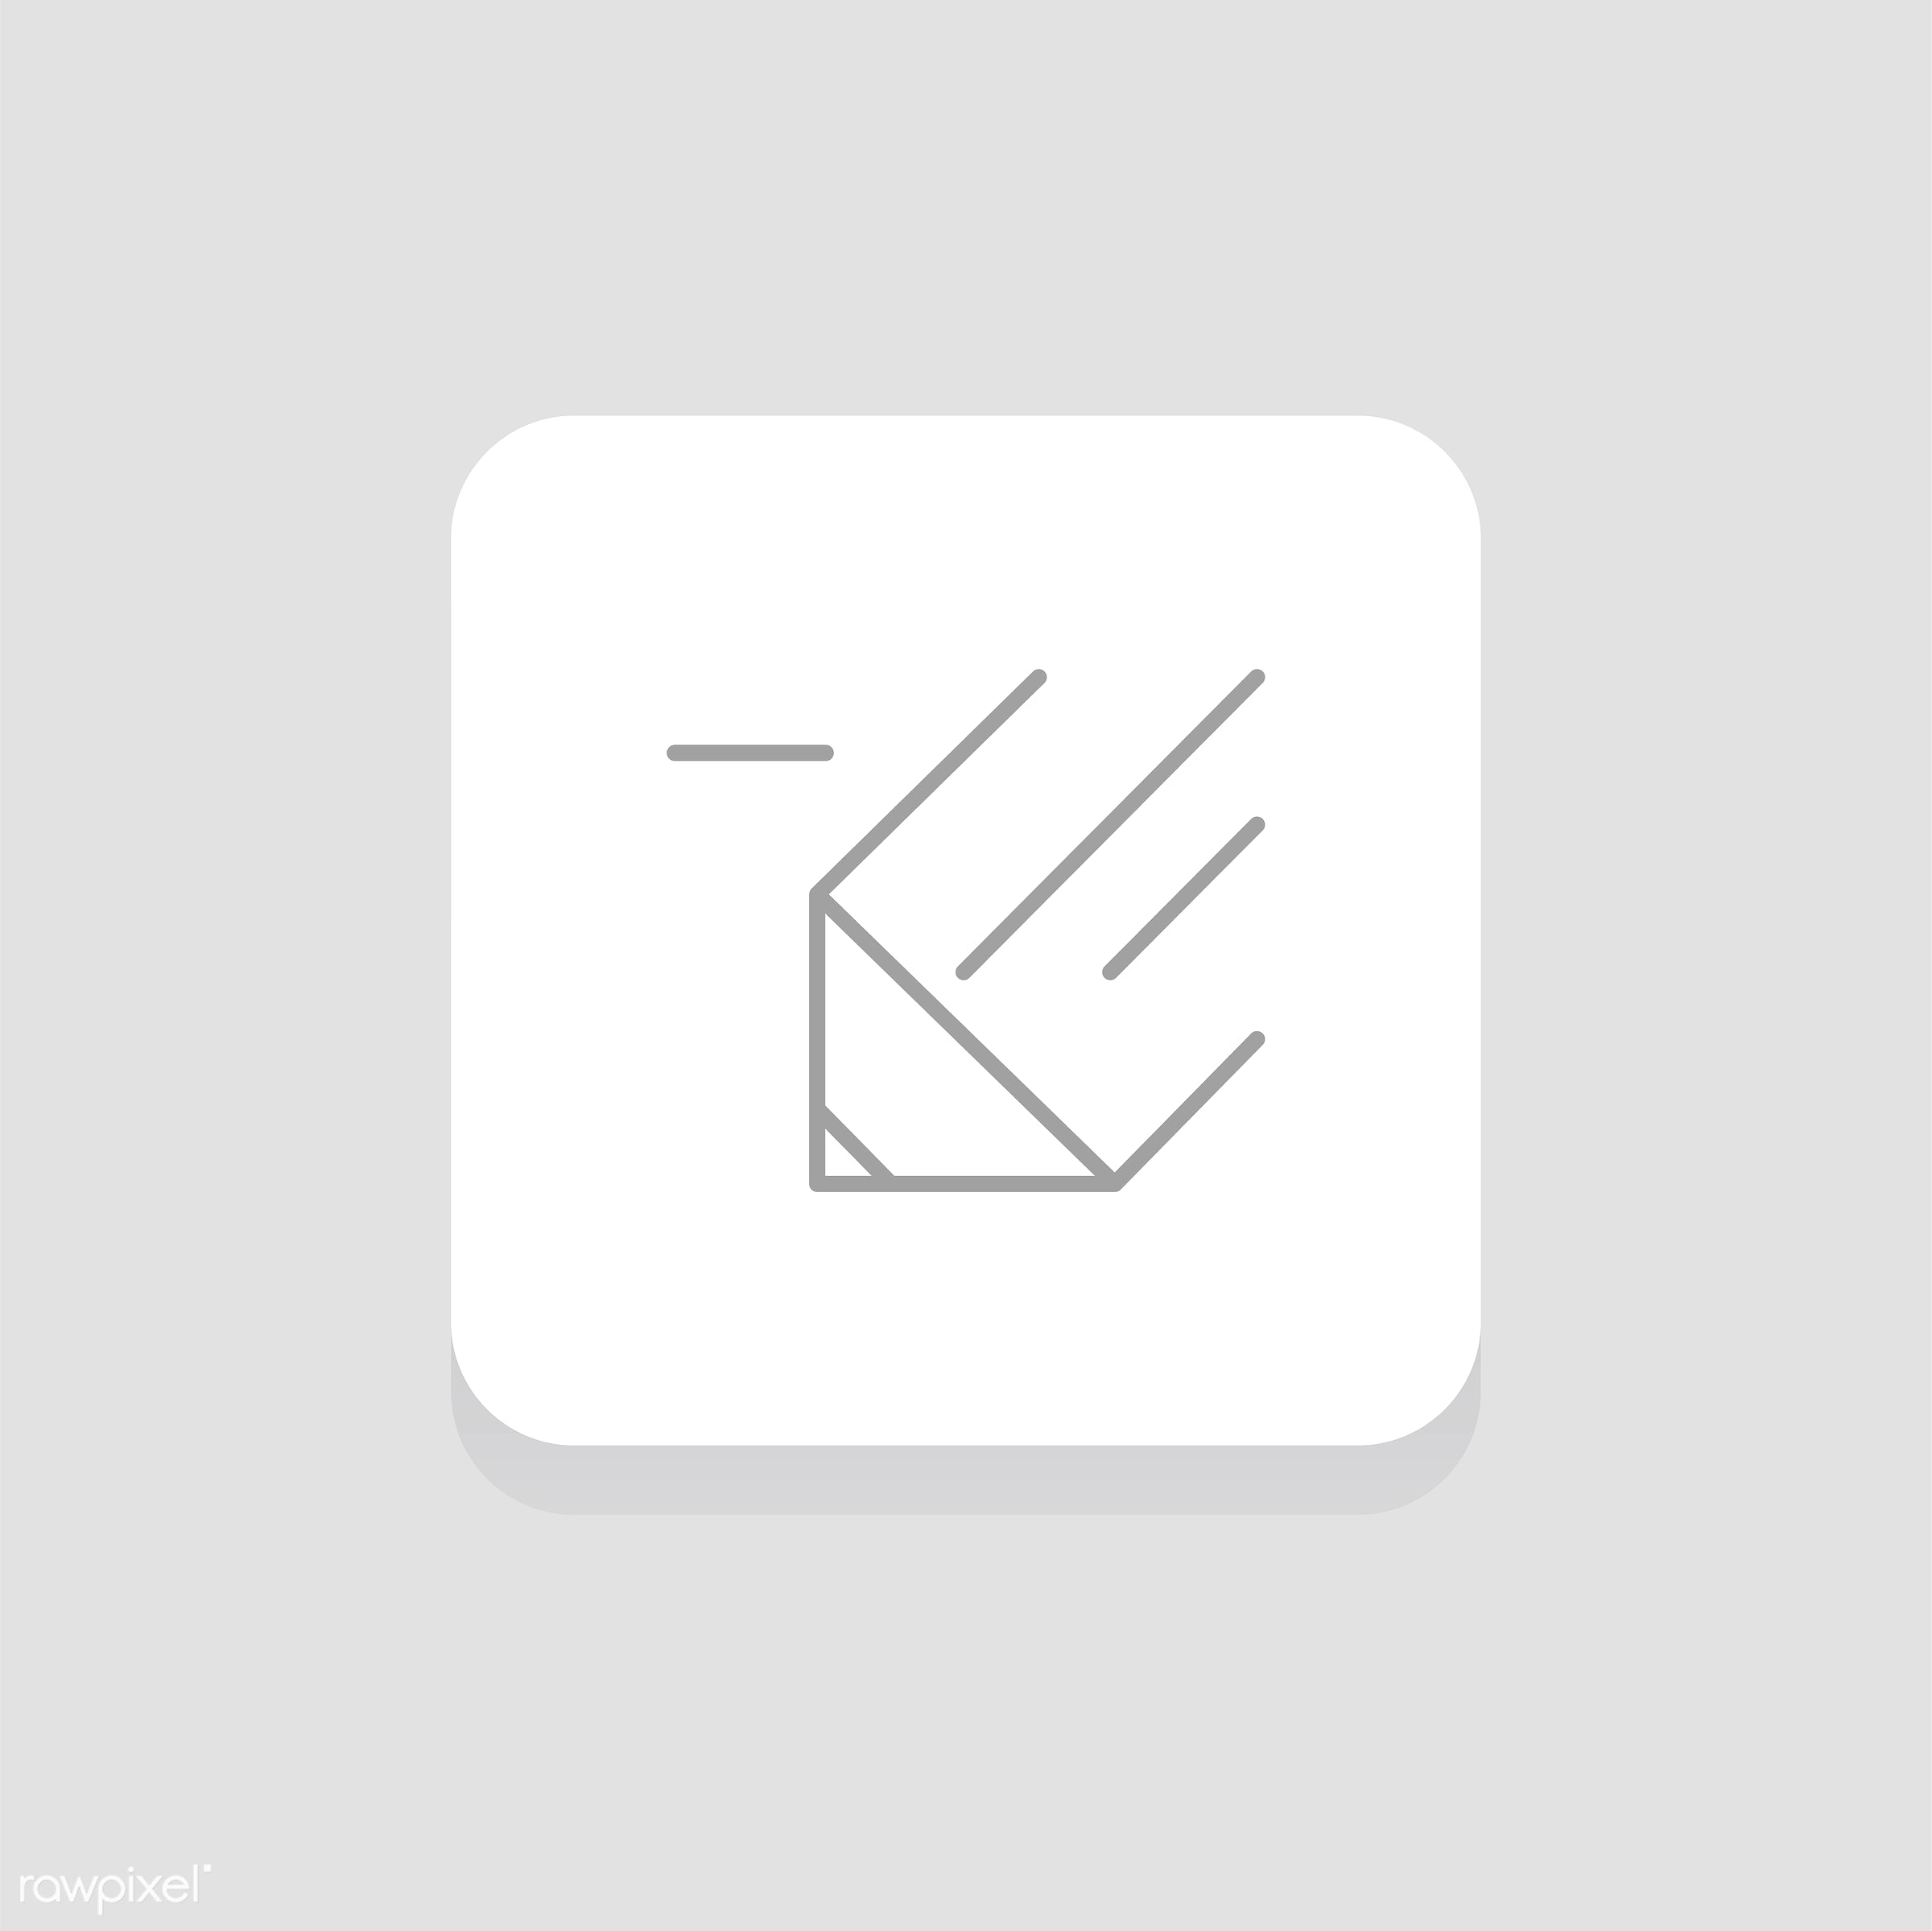 Vector of design edit icon - align, alignment, design, edit, flat, graphic, icon, illustration, isolated, layout, platform,...